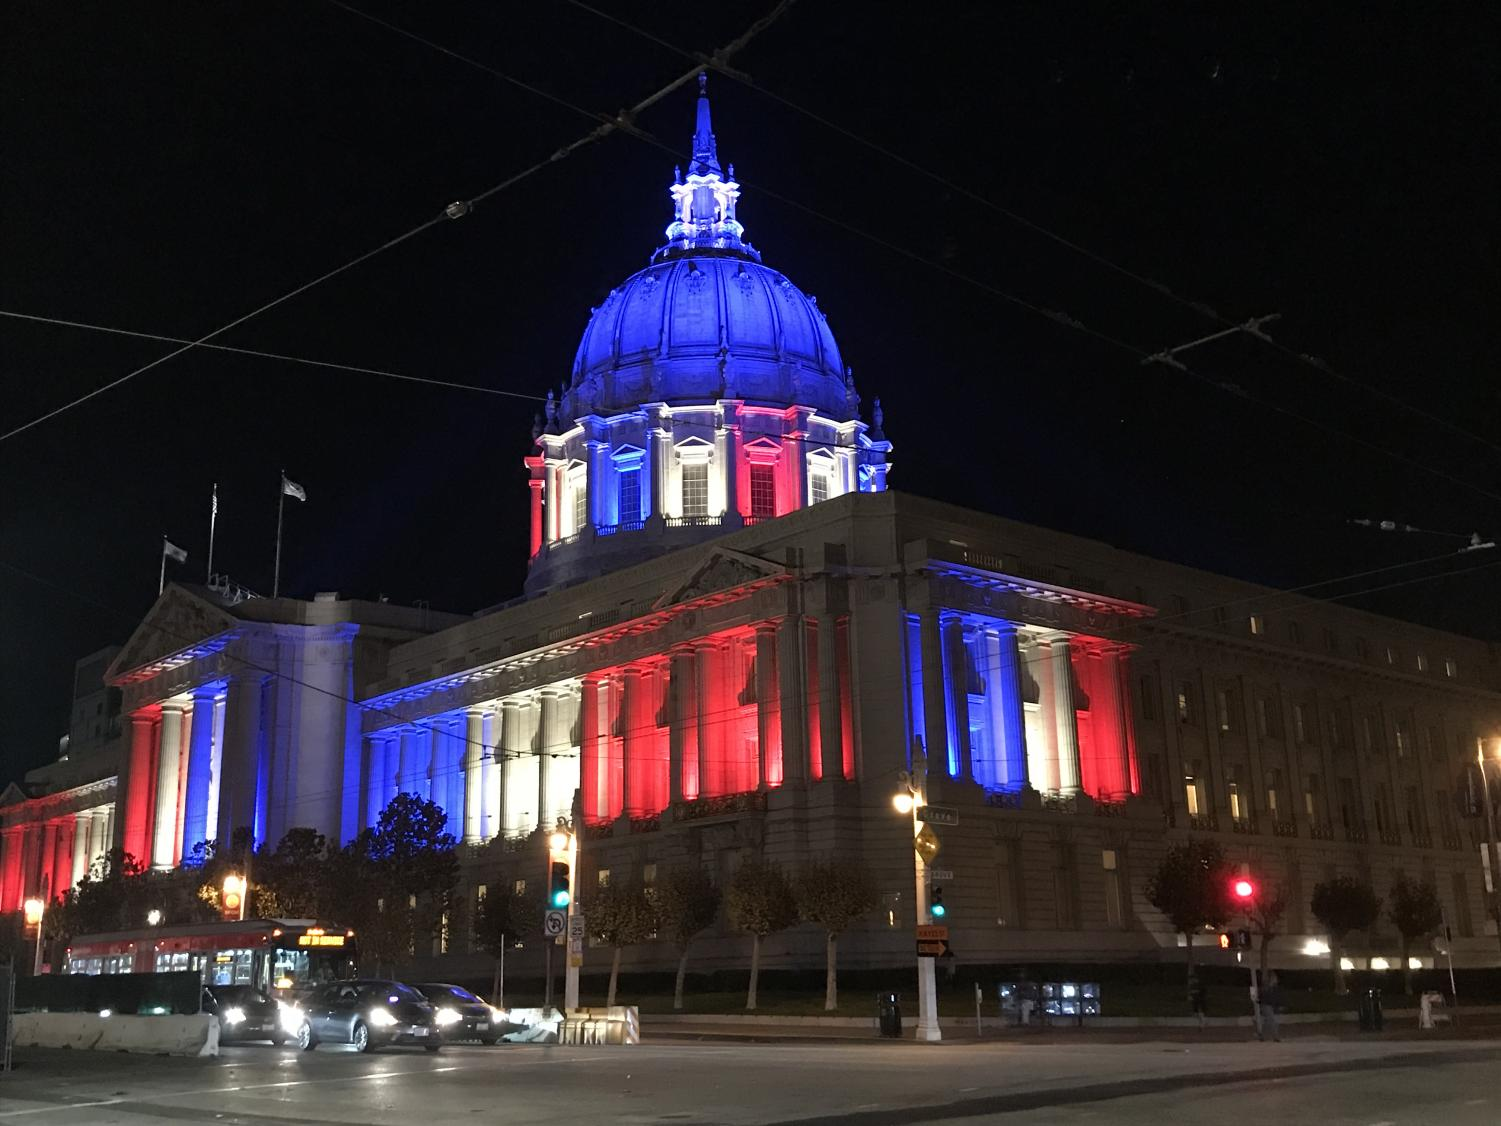 The San Francisco City Hall lit up in the colors of the American flag. Government workers across multiple federal agencies are without pay due to a government shutdown that has lasted 22 days.